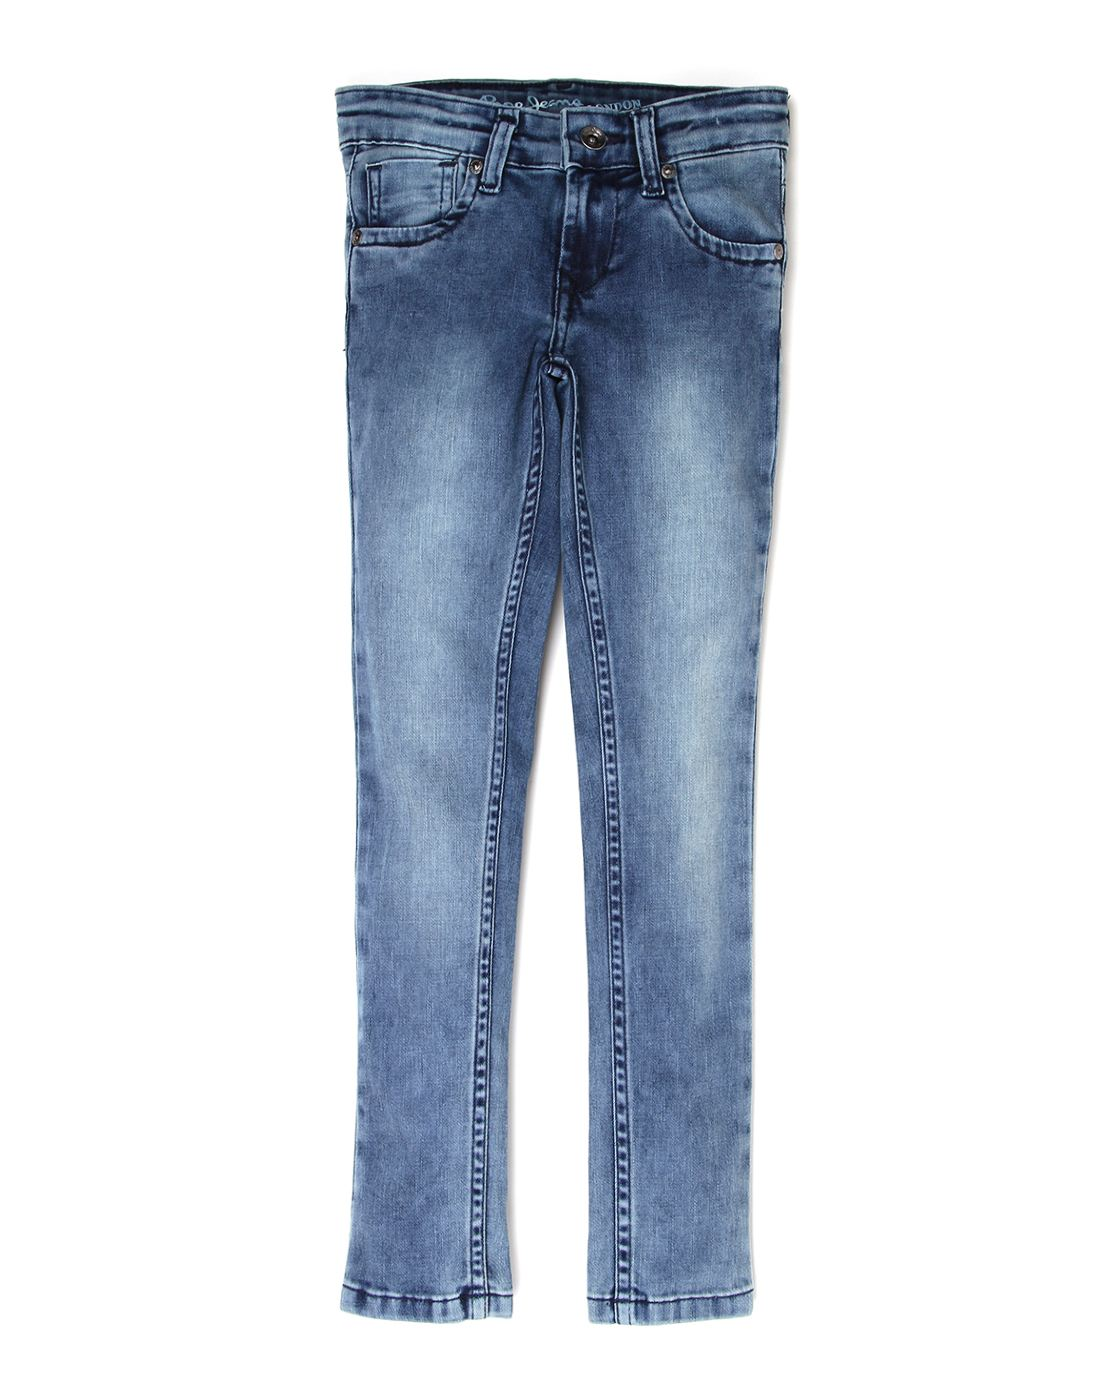 Pepe Jeans Girls Cotton Jeans